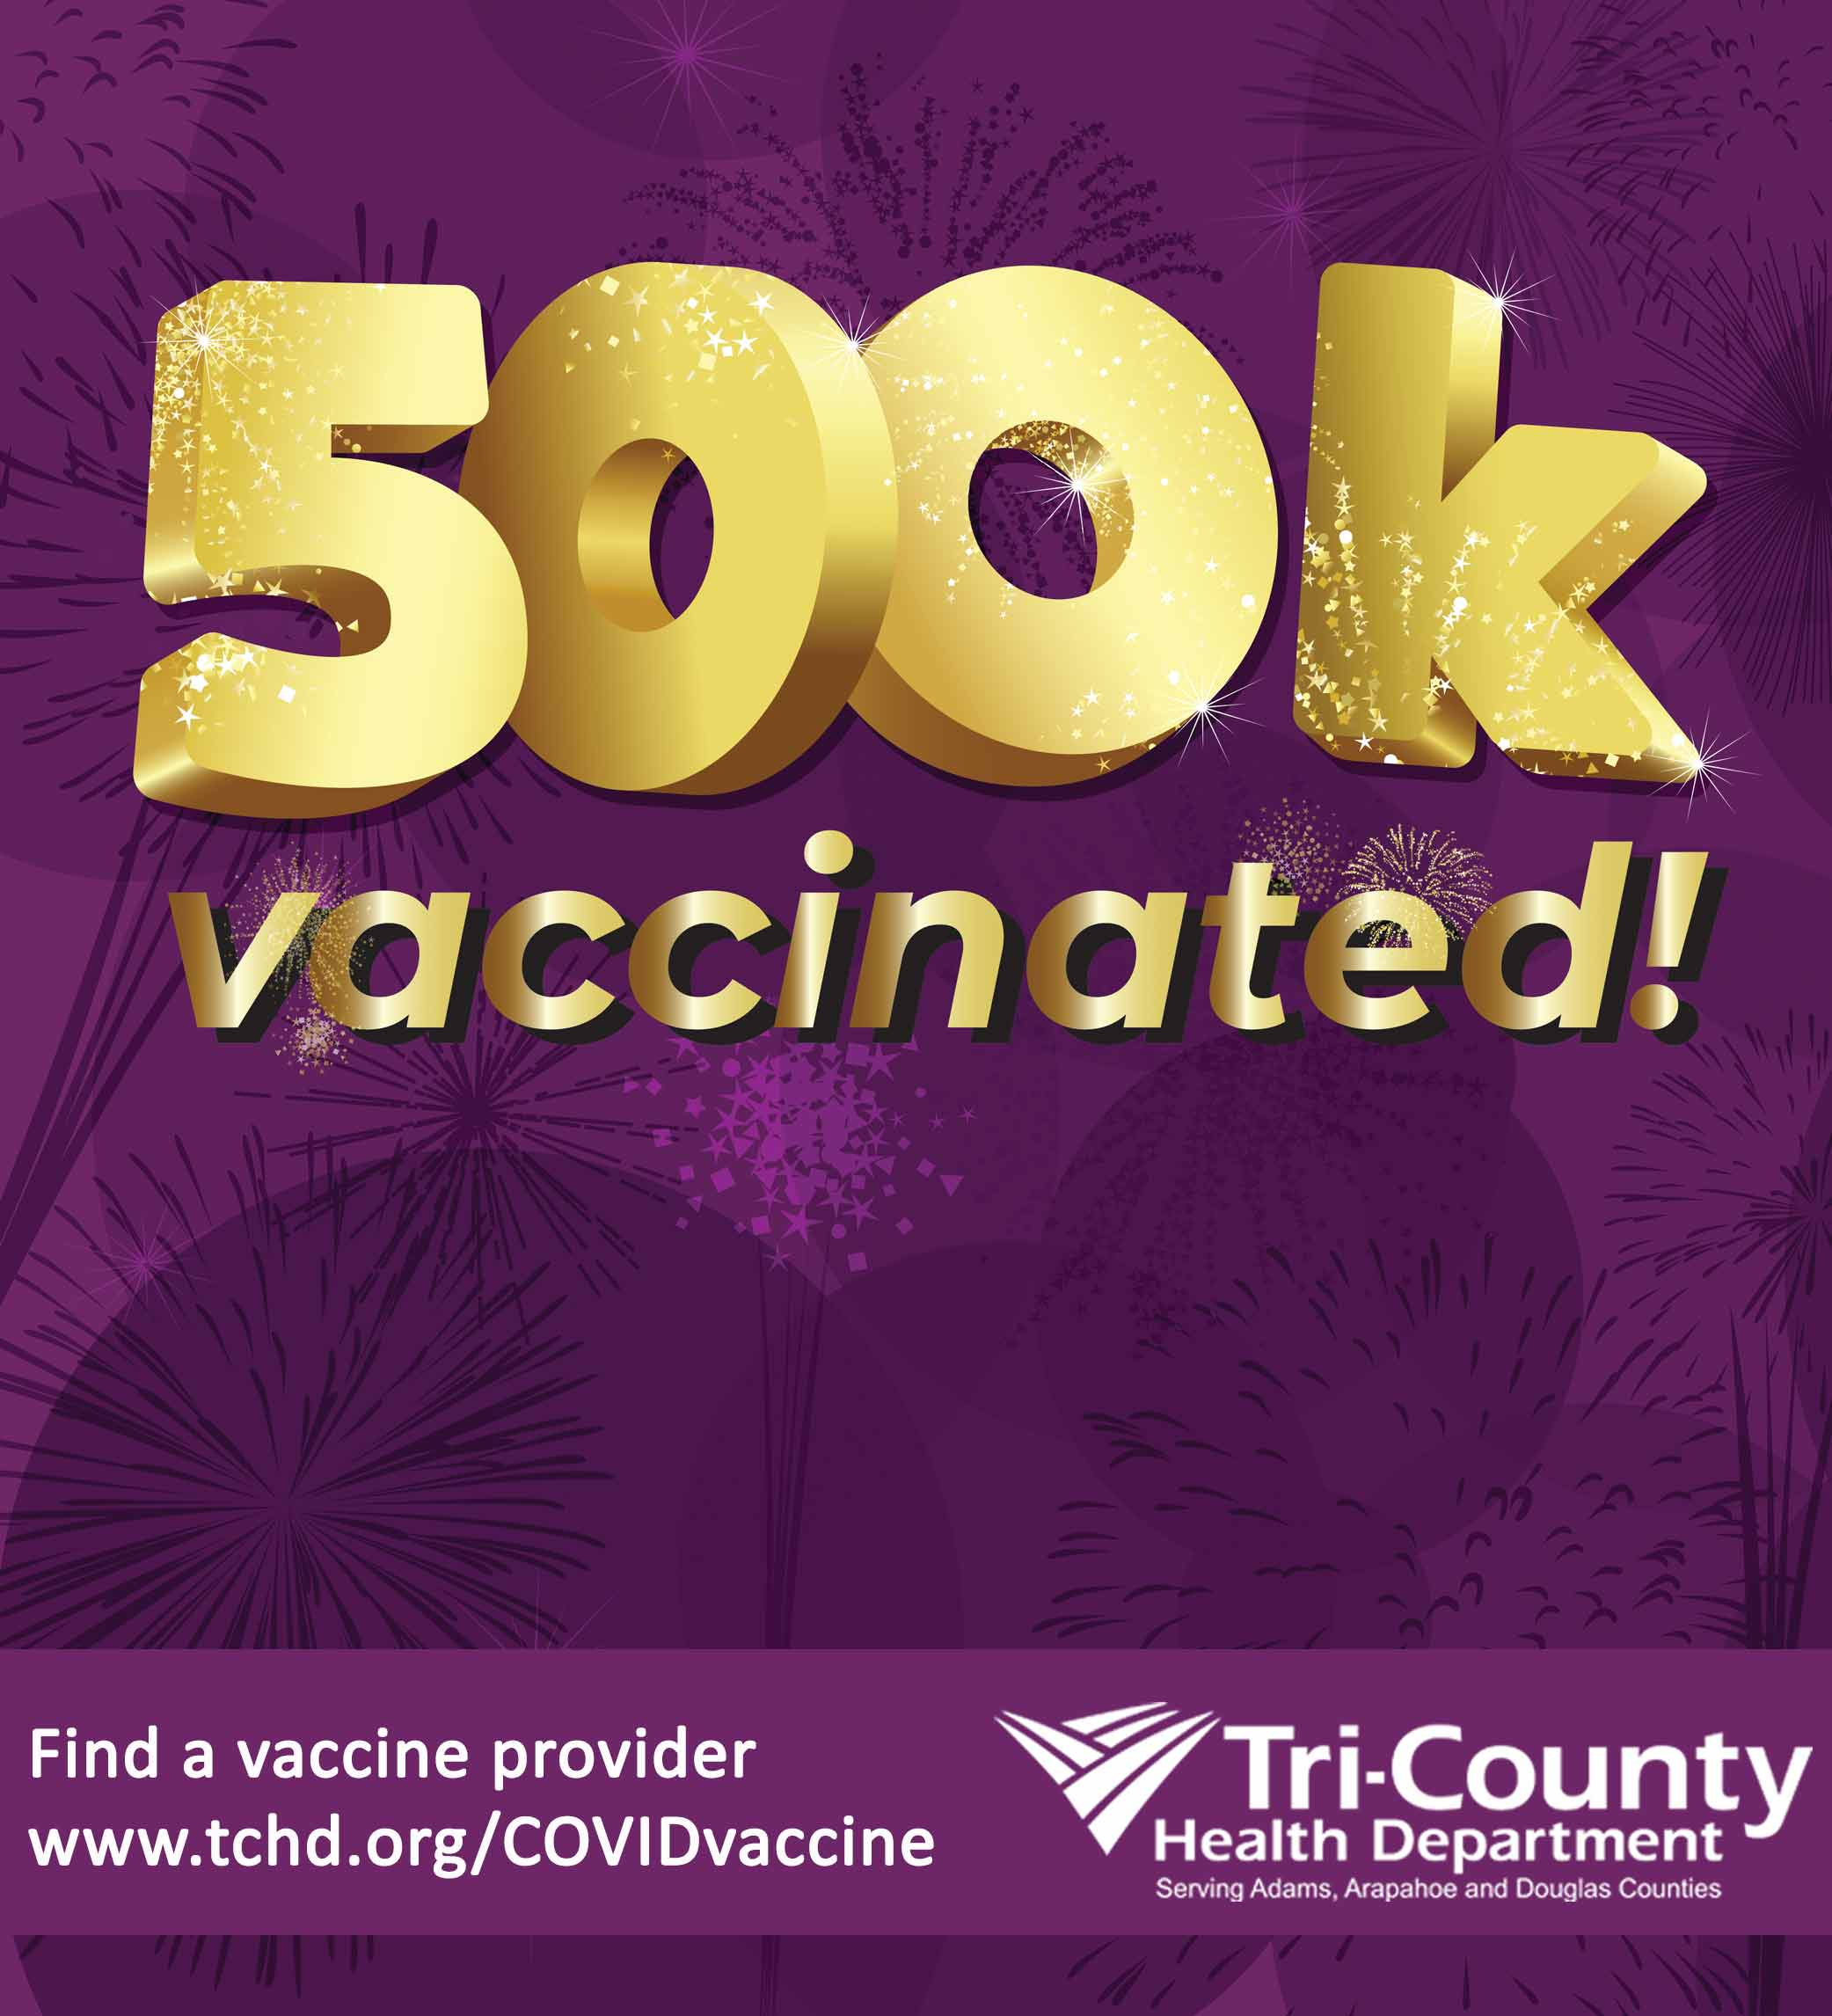 Purple background with fireworks showing 500K vaccinated!